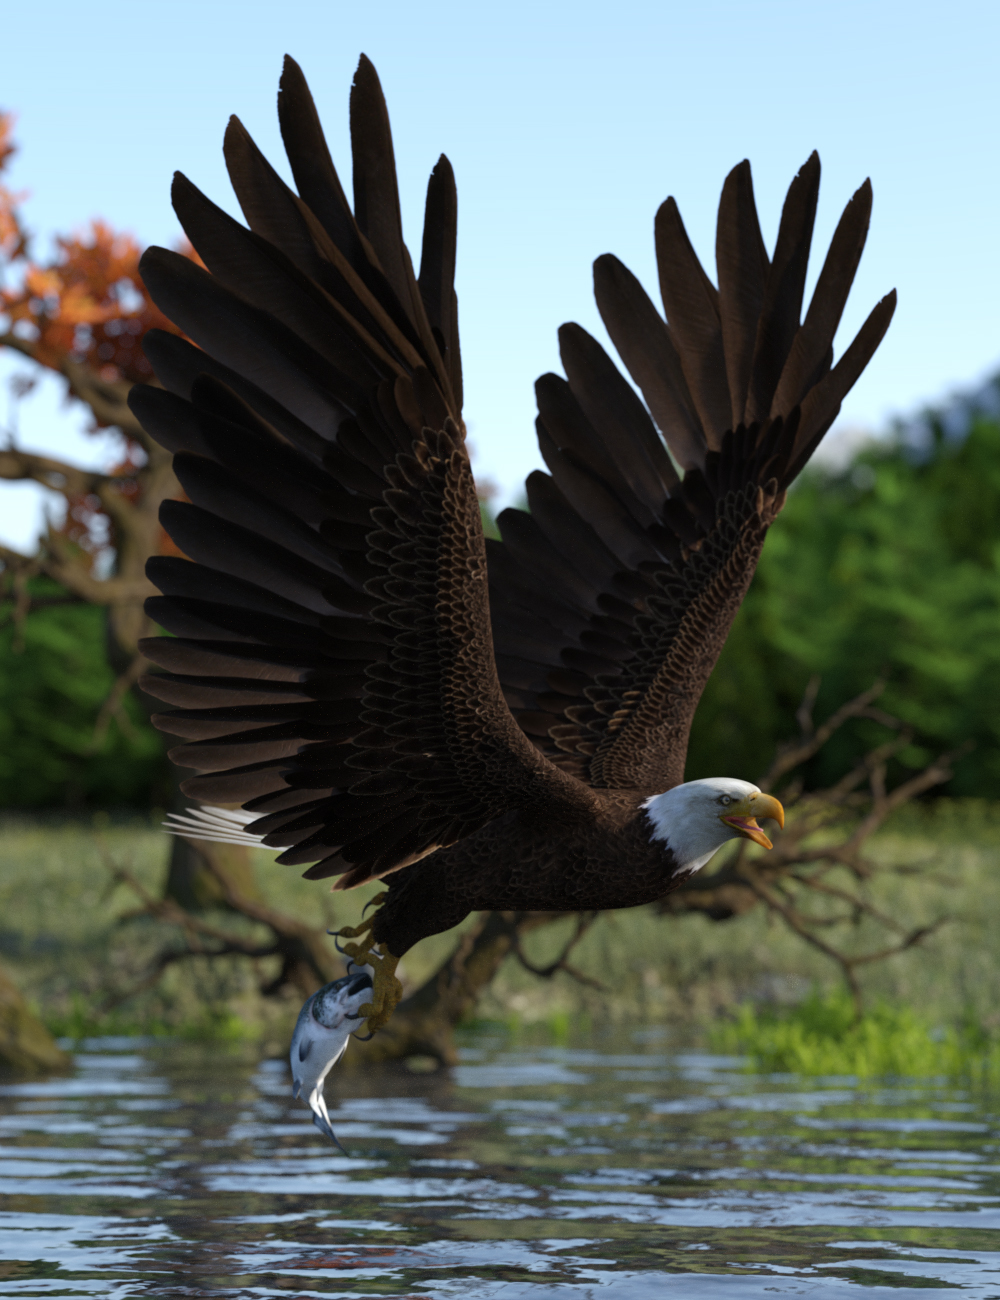 Deepsea's Eagle Poses and Fish by: Deepsea, 3D Models by Daz 3D